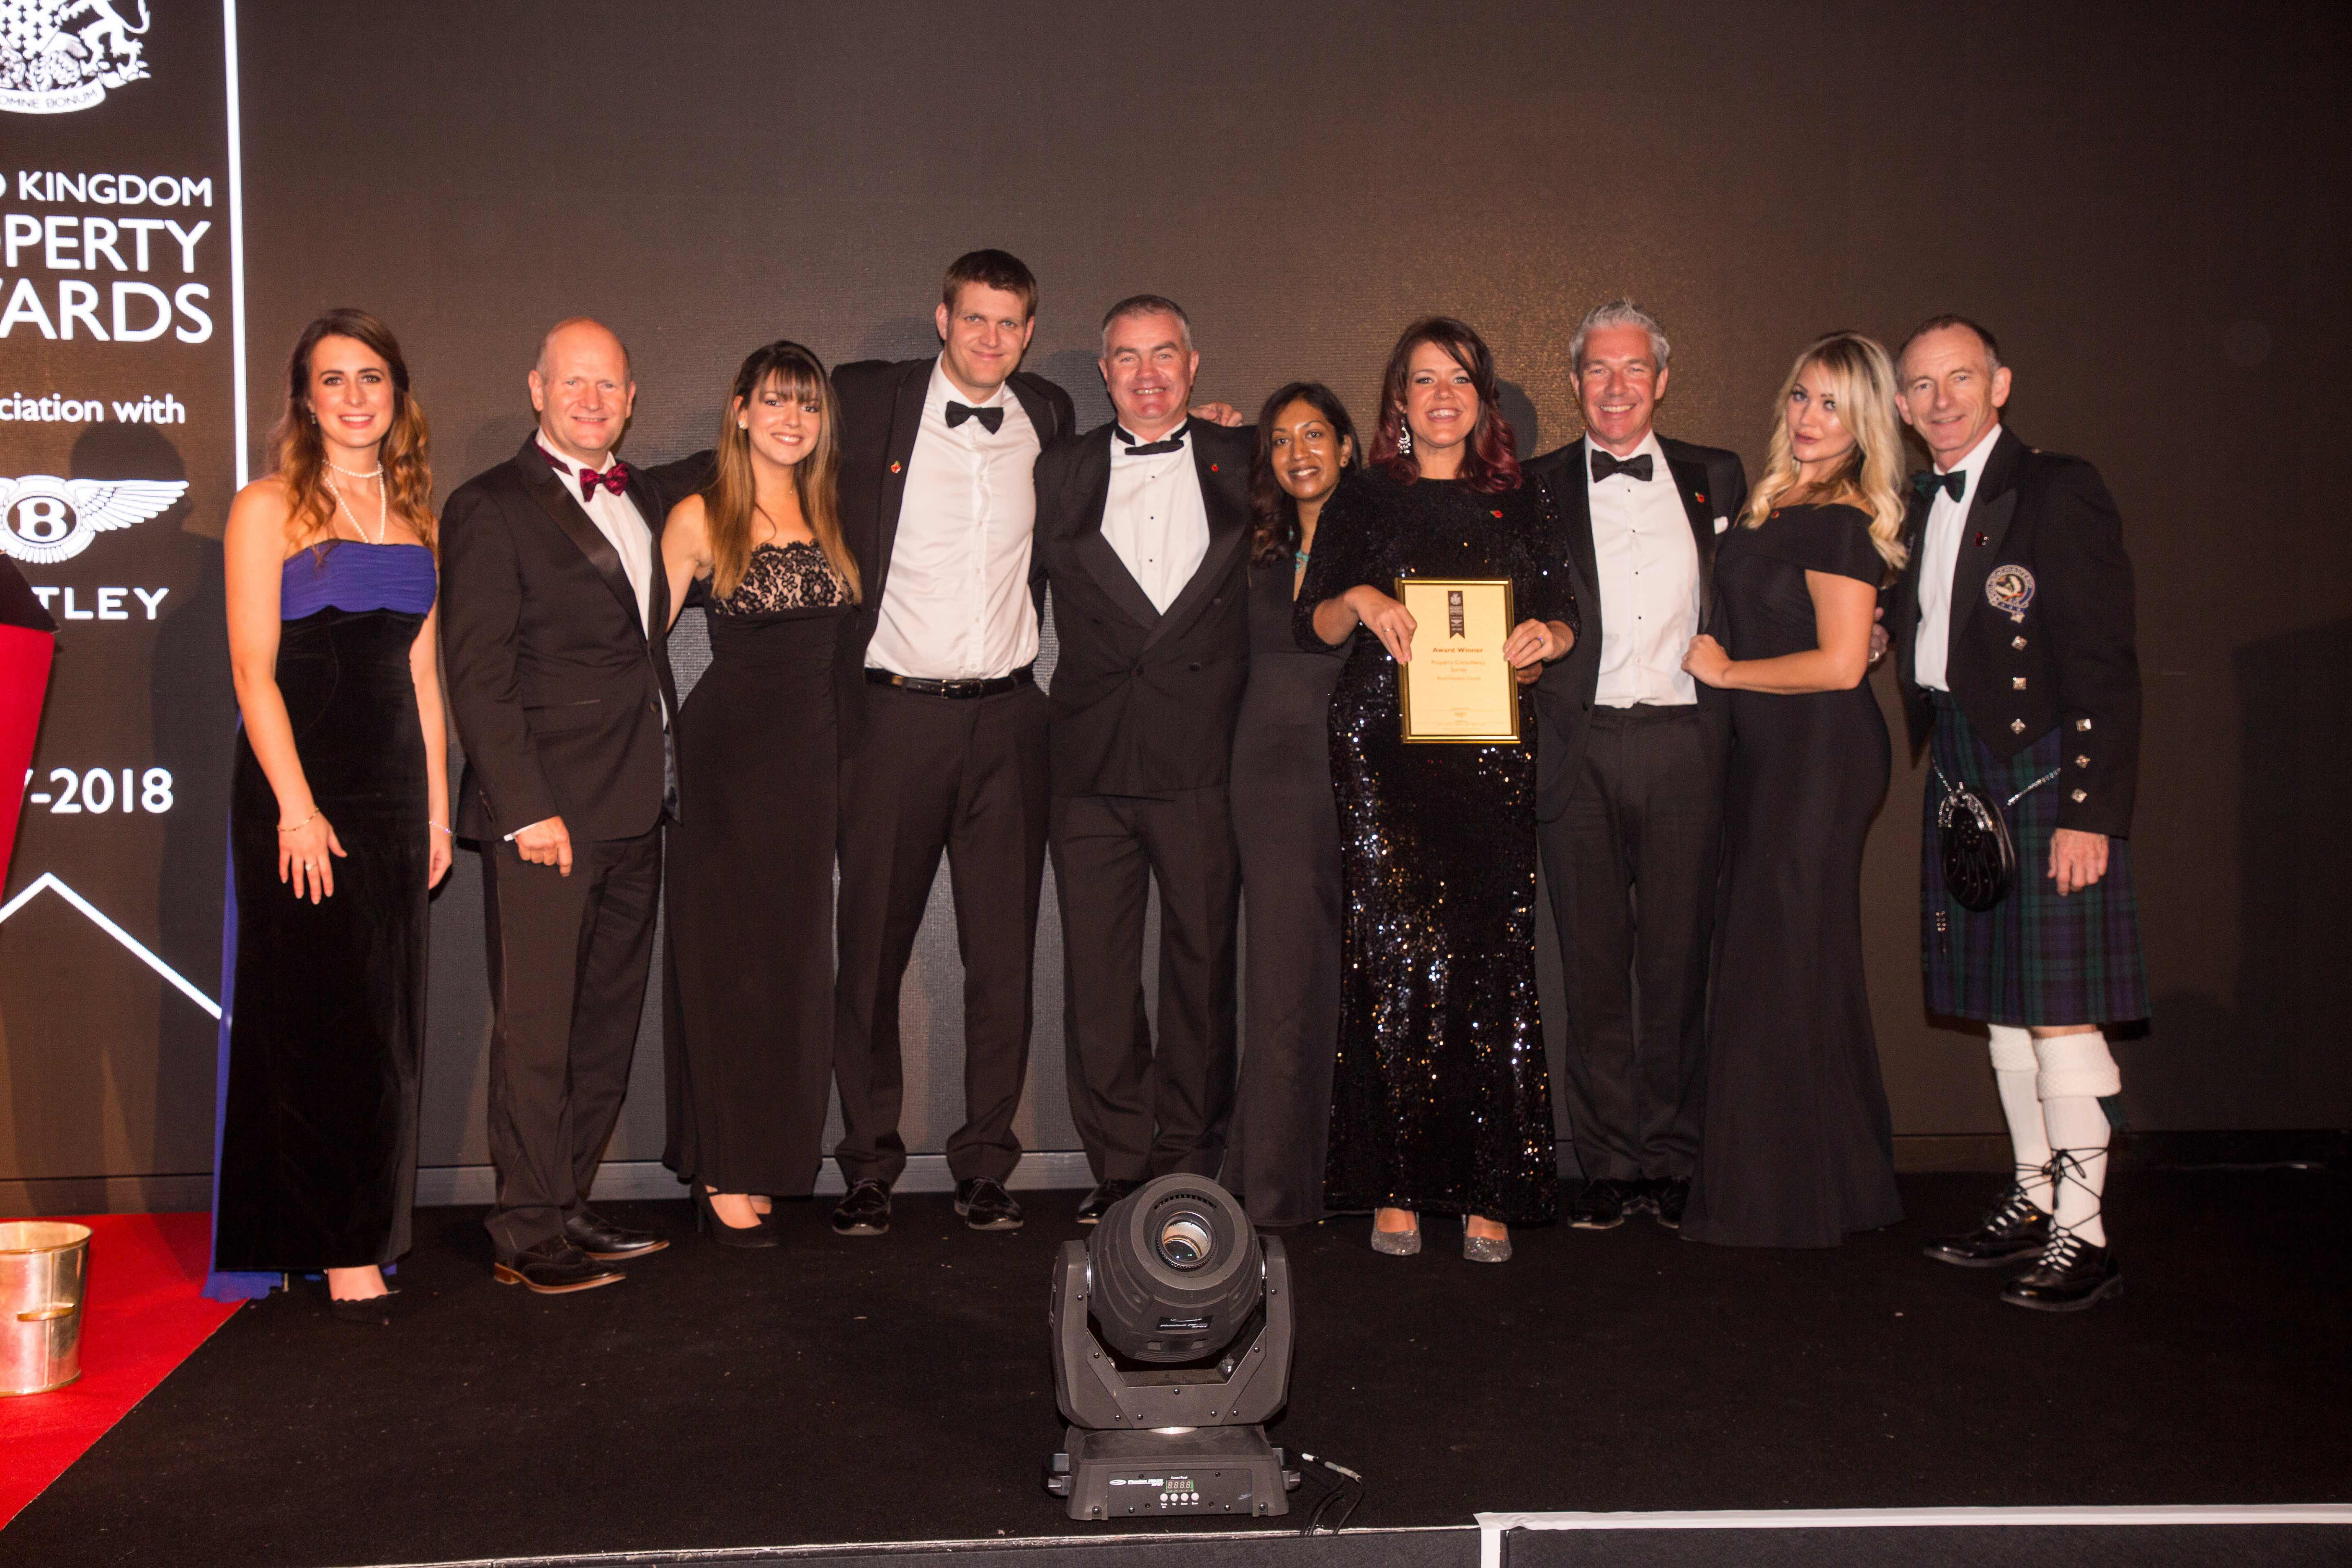 It's official - Bond Davidson is the Best Property Consultancy in Surrey